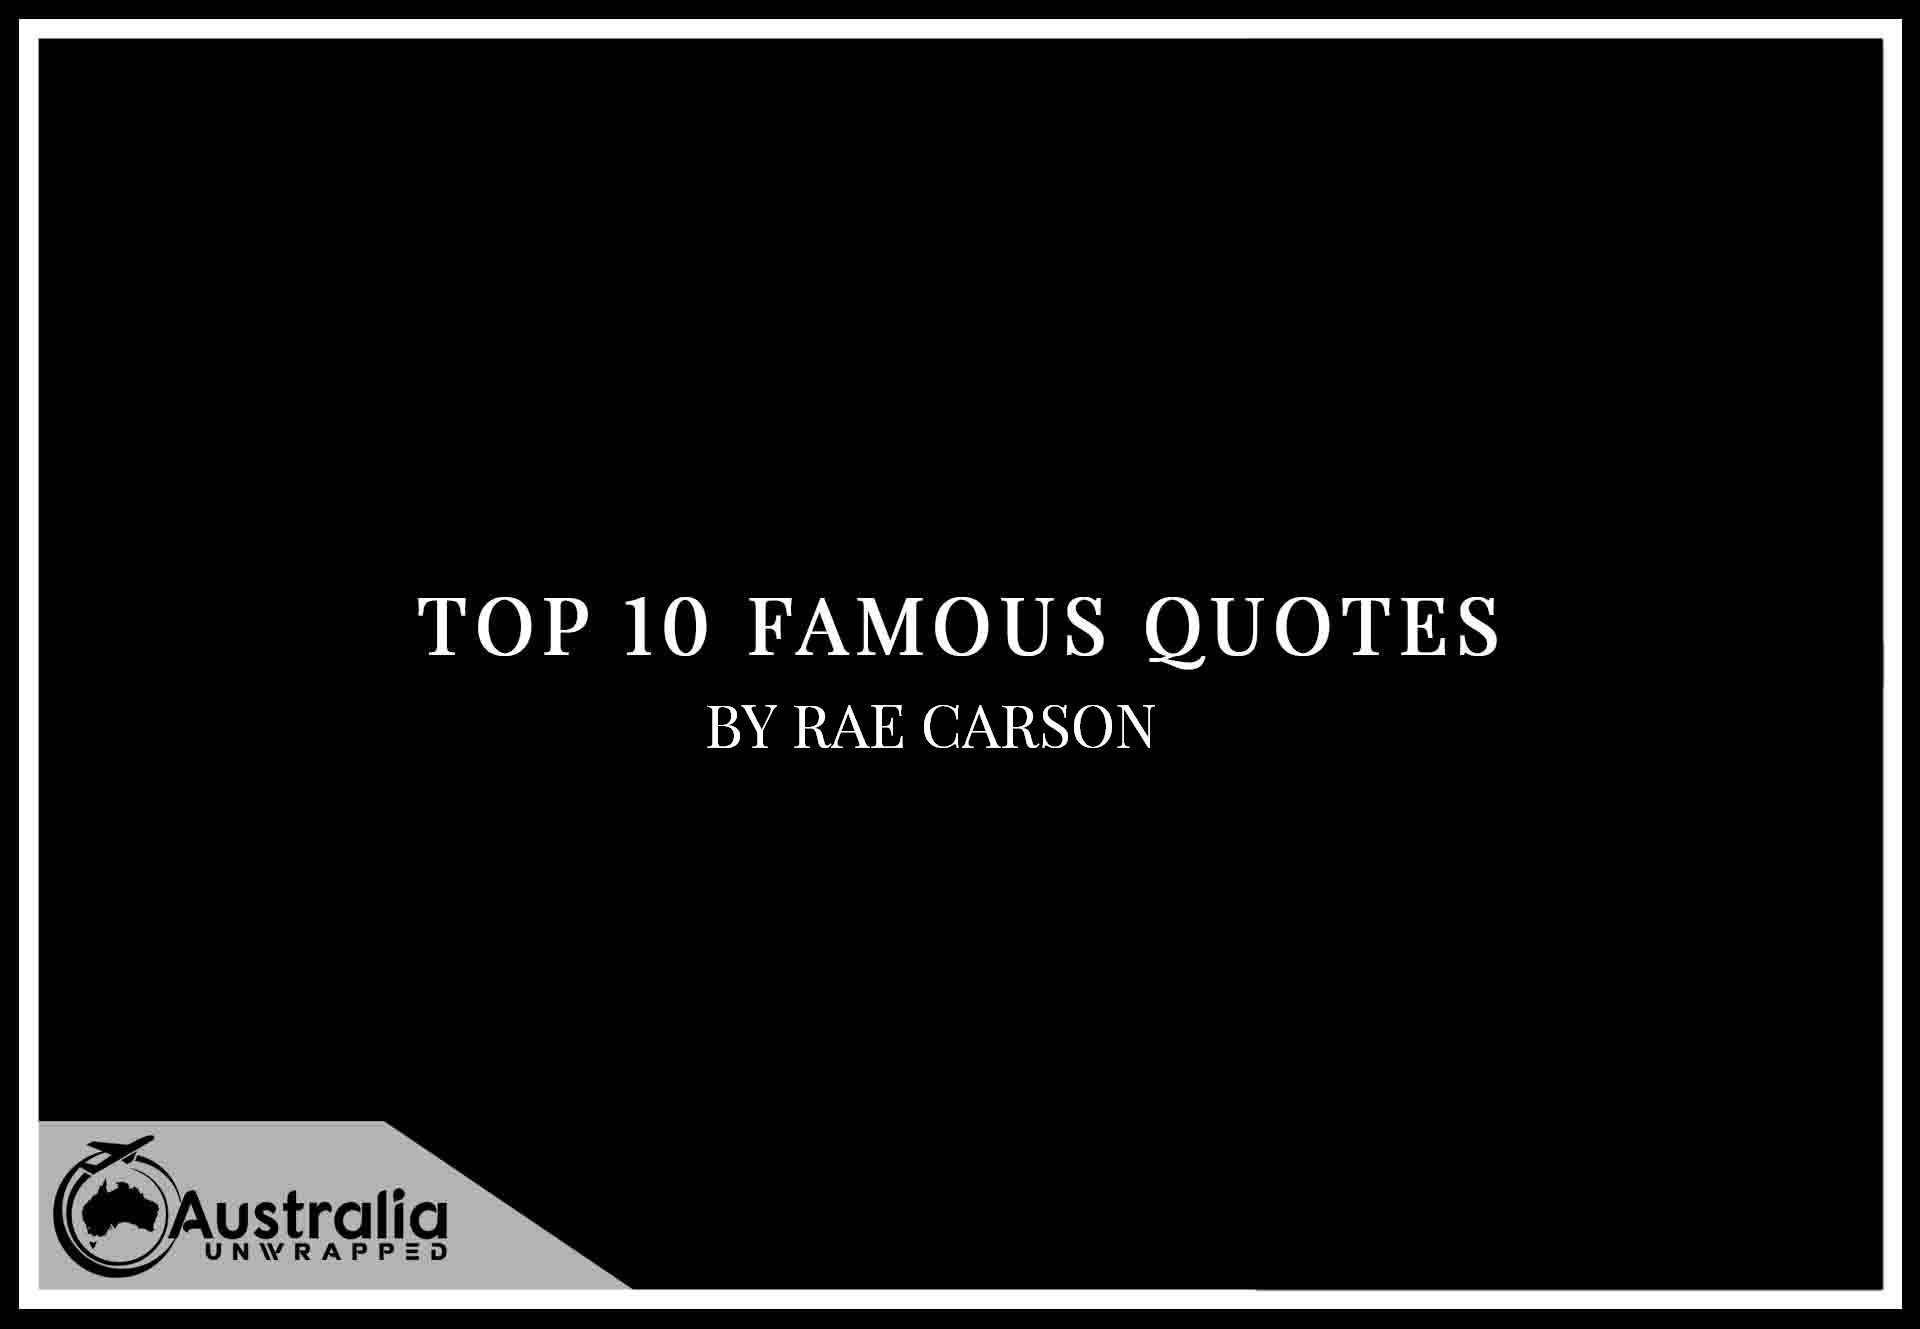 Top 10 Famous Quotes by Author Rae Carson